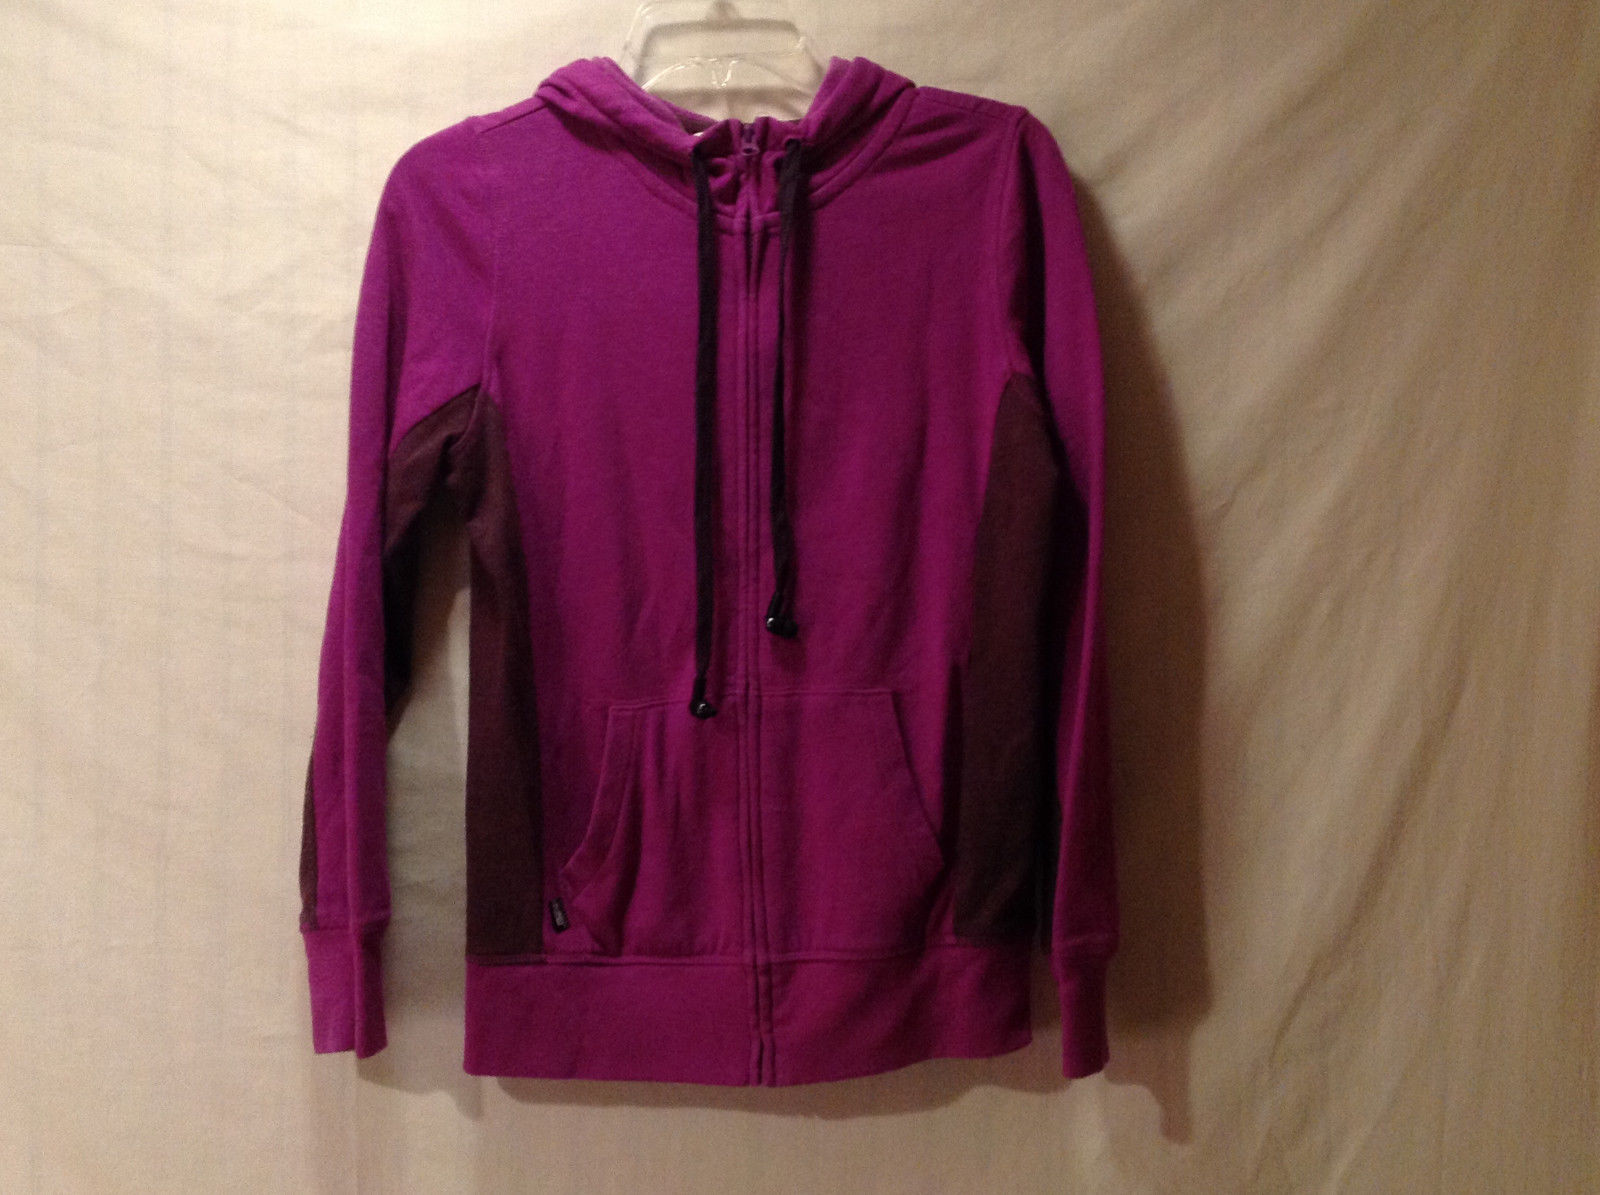 Old Navy Women's Size S Hoodie Sweatshirt Purple w/ Front Zipper Contrast Sides